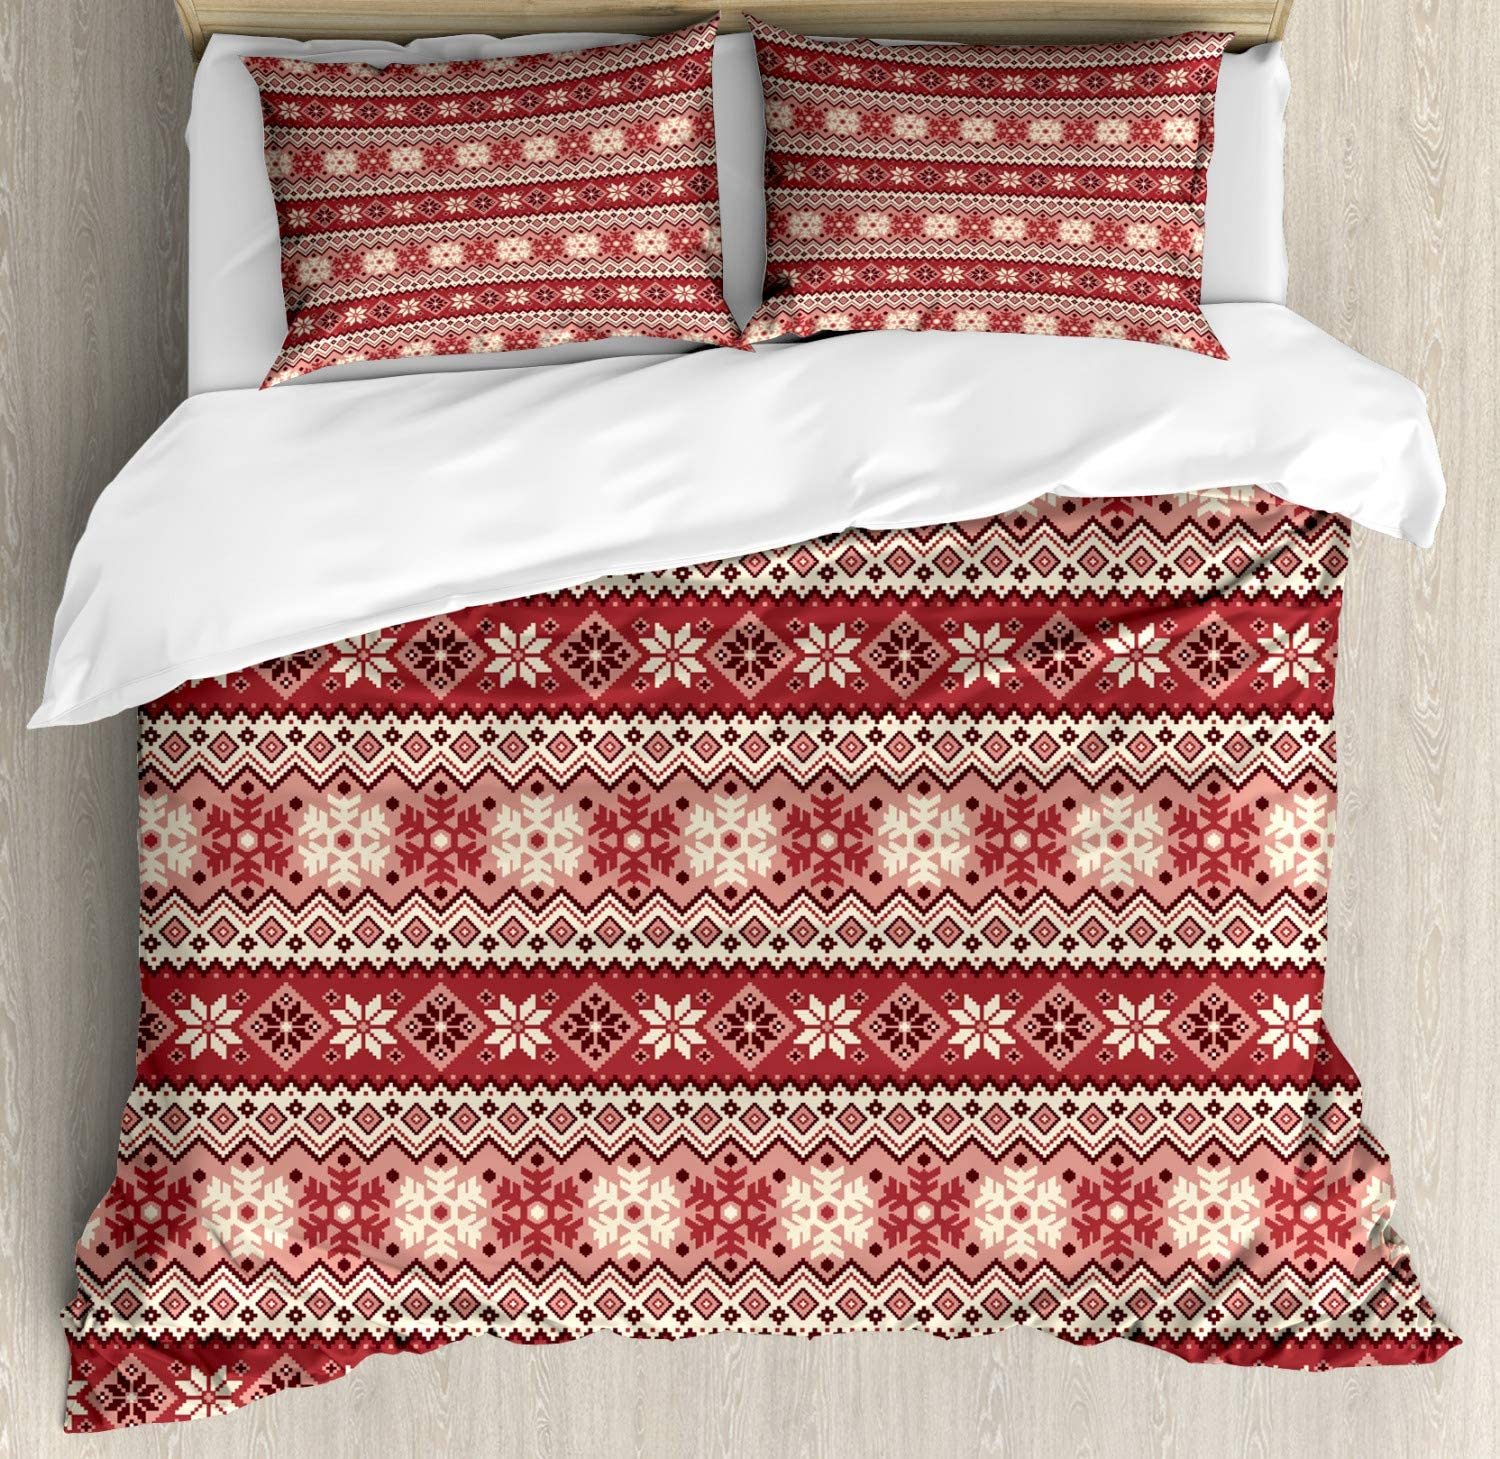 Ambesonne Nordic Duvet Cover Set, Ancestral Classic Scandinavian Geometric Pattern Christmas Snowflakes, Decorative 3 Piece Bedding Set with 2 Pillow Shams, Queen Size, Coral White